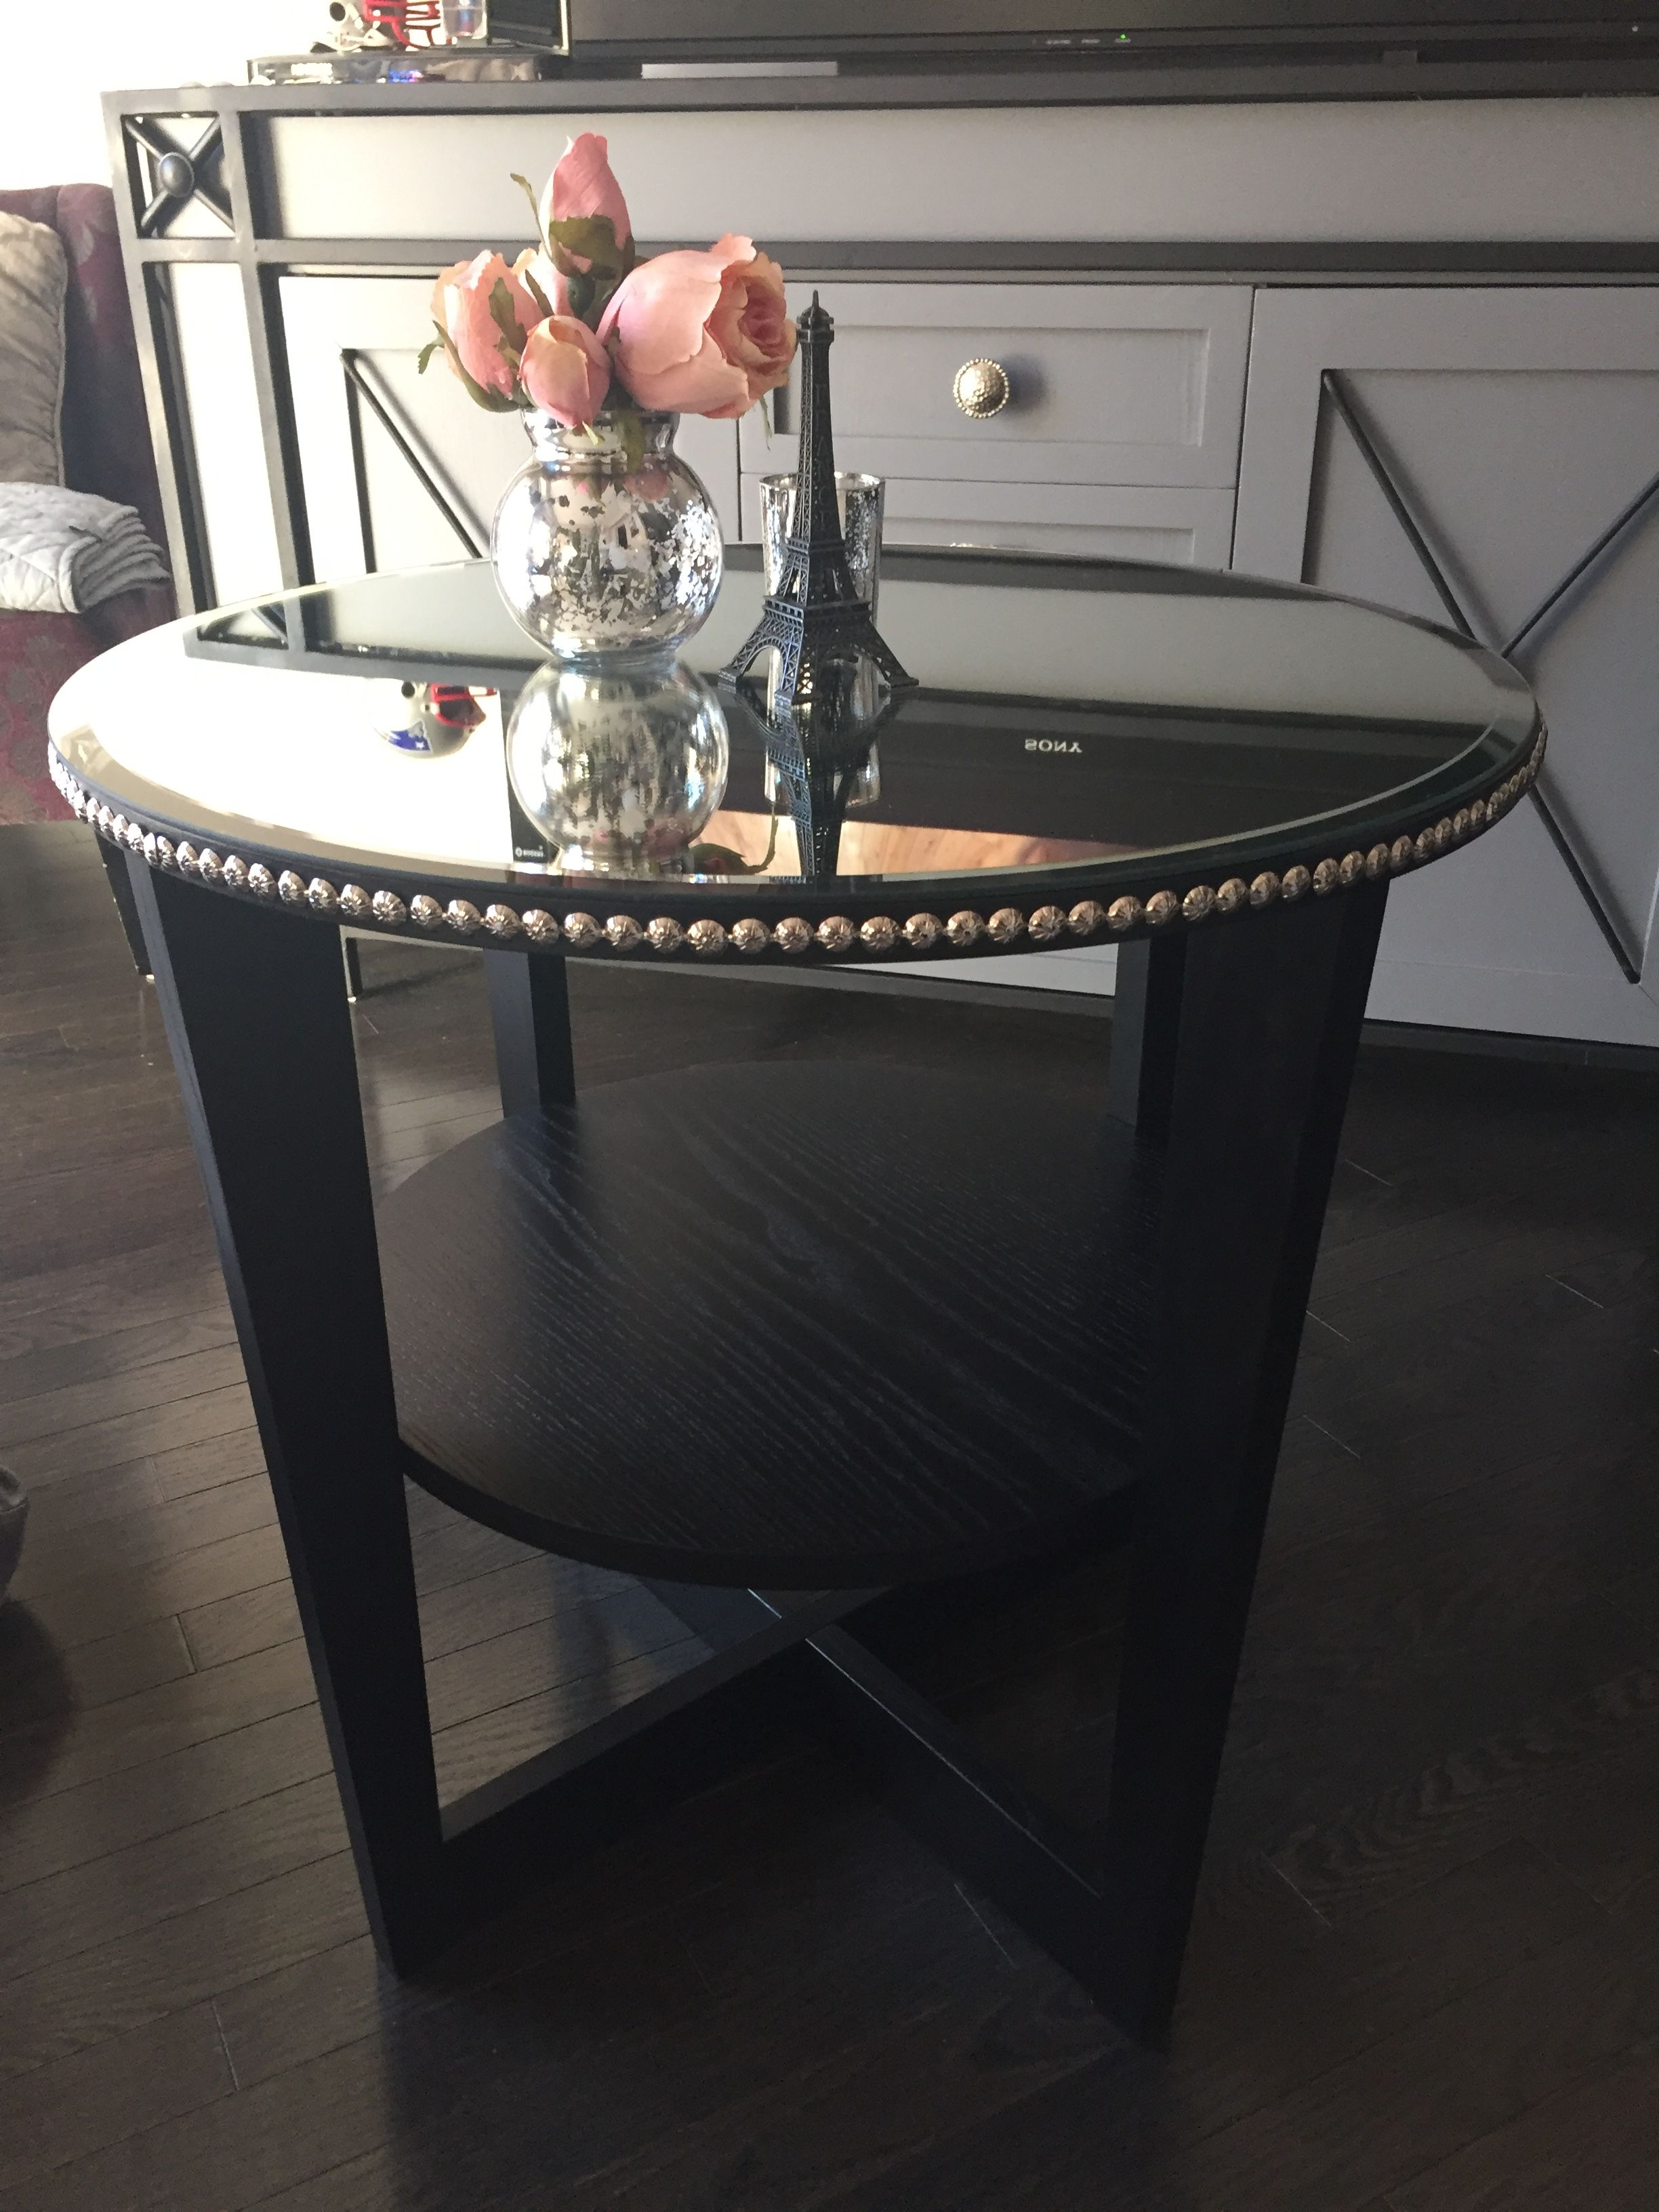 Ikea Vejmon Side Table Black Furniture Fancy Tacks Strips Two From Lee Valley And Ikea Beveled Mi Ikea Side Table Wood Console Table Ikea Lack Coffee Table [ 3264 x 2448 Pixel ]